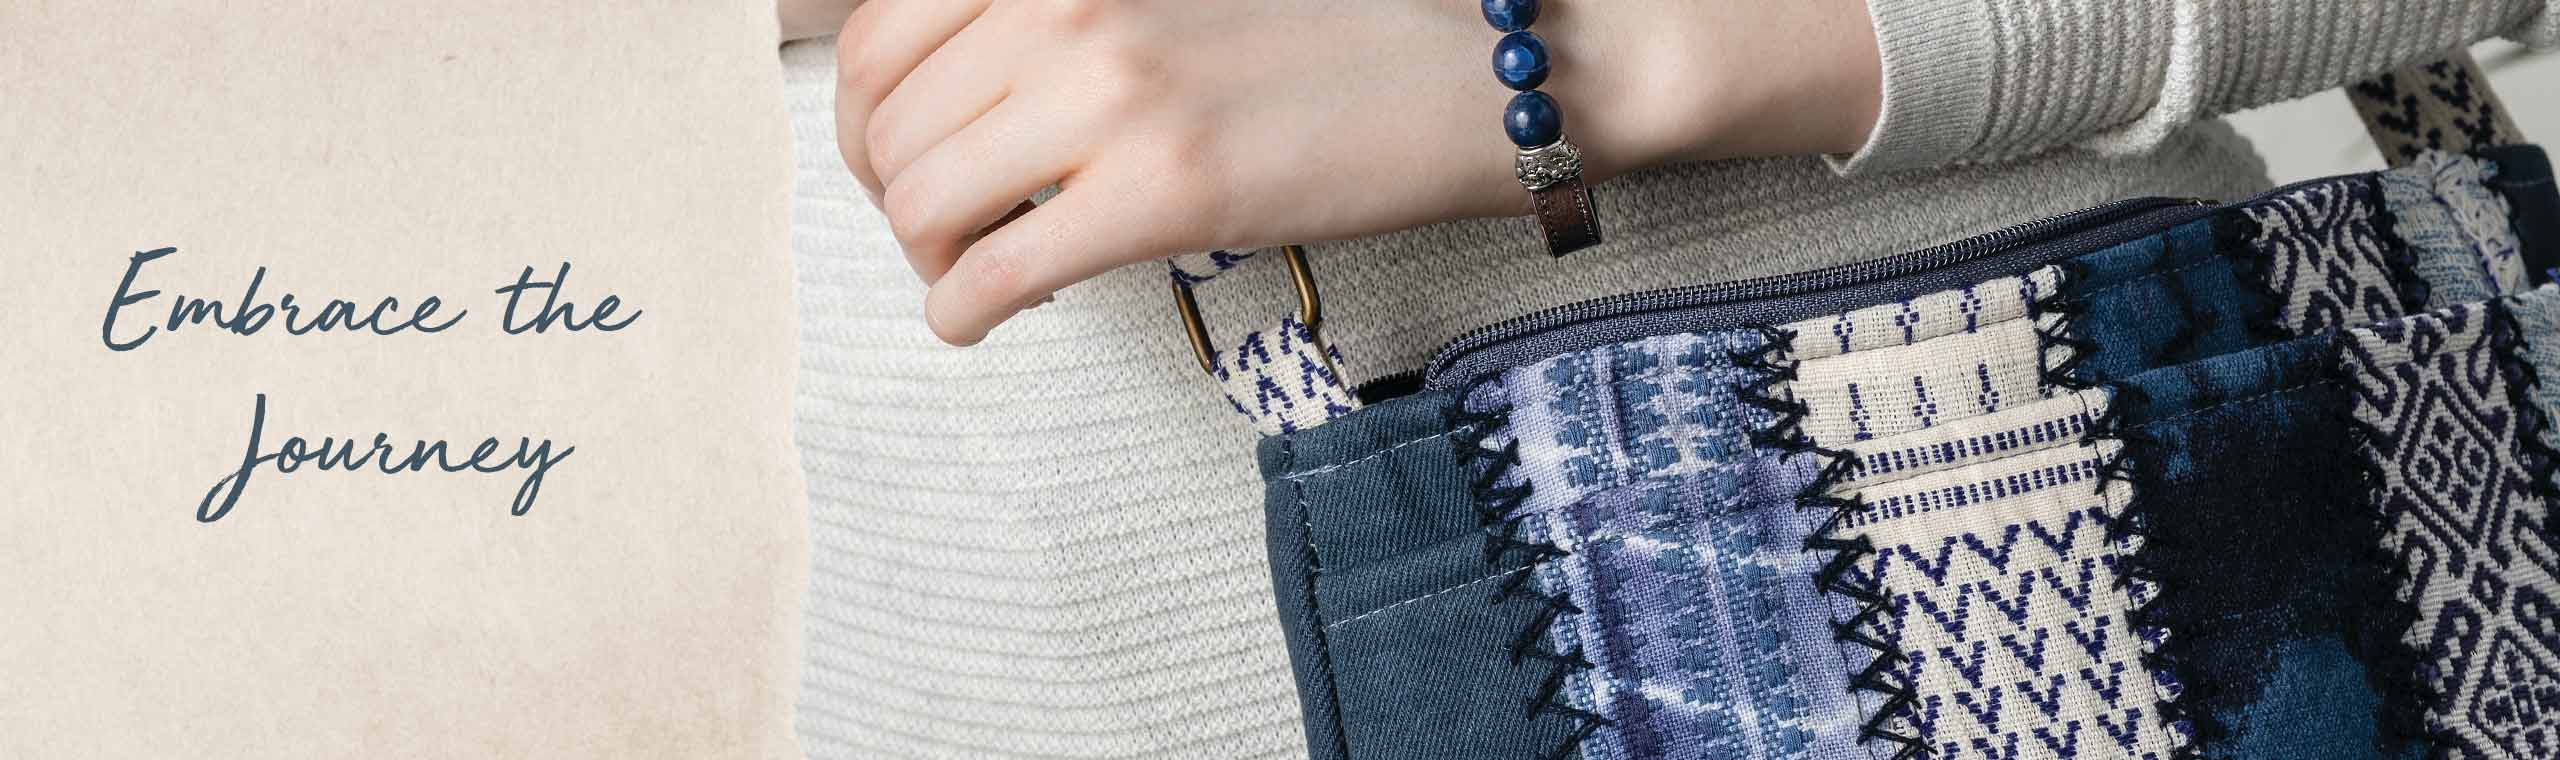 Embrace the Journey! a blue fabric bag that is wonderfully textured